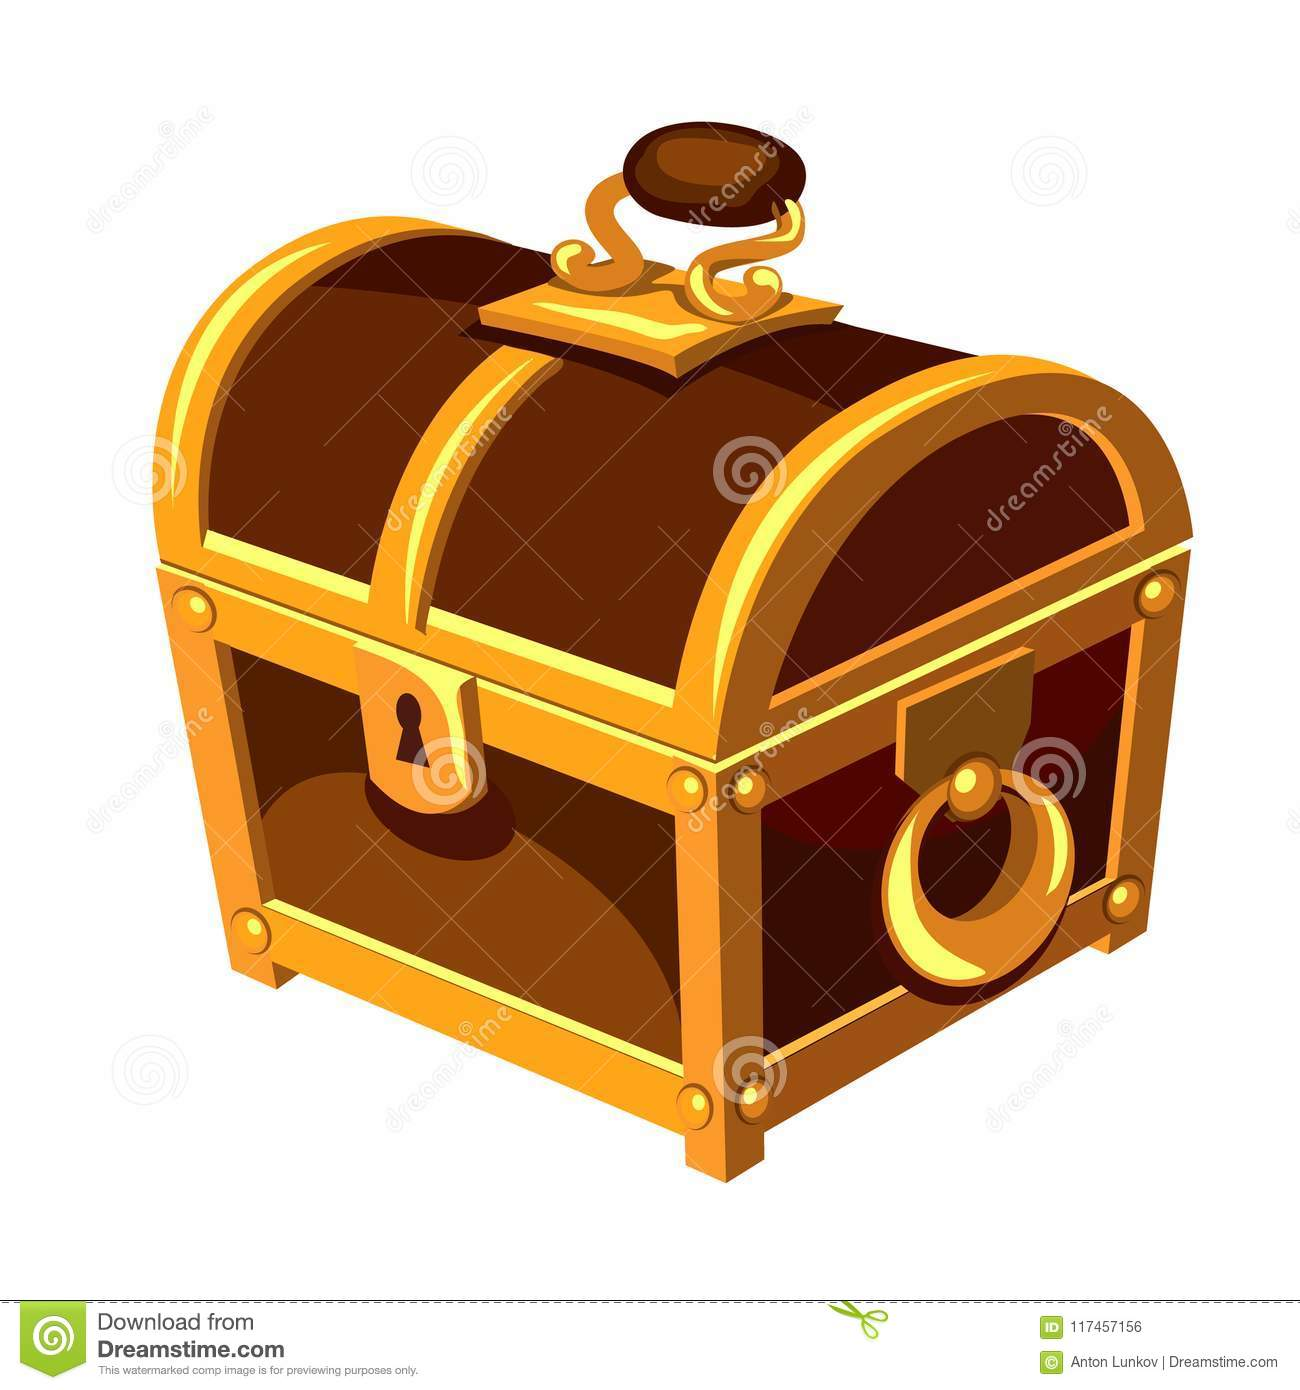 Vintage wooden chest with gold handle hinge isolated on white background. Vector cartoon close-up illustration.